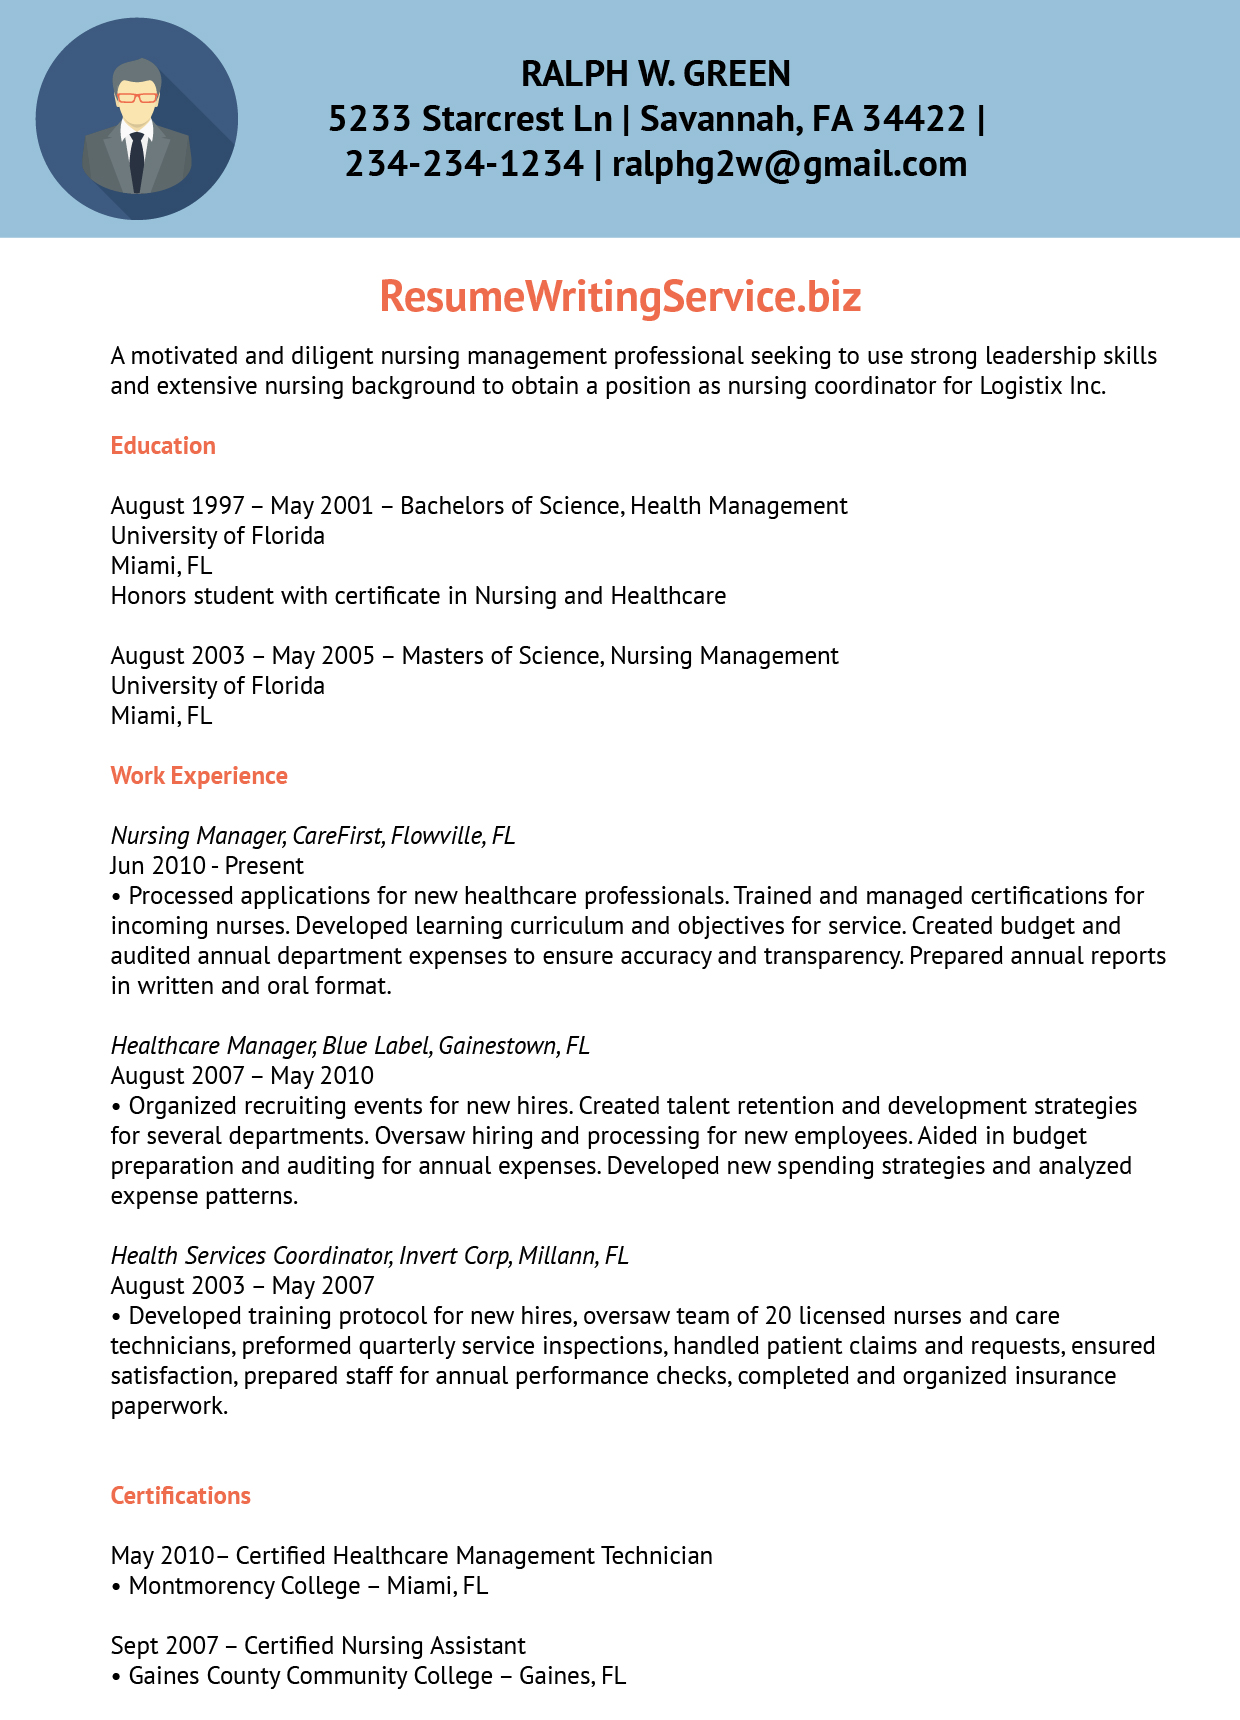 nursing resume writing service sample customer service resume nursing resume writing service federal rsum writing service directory nursing program coordinator resume sample resume writing